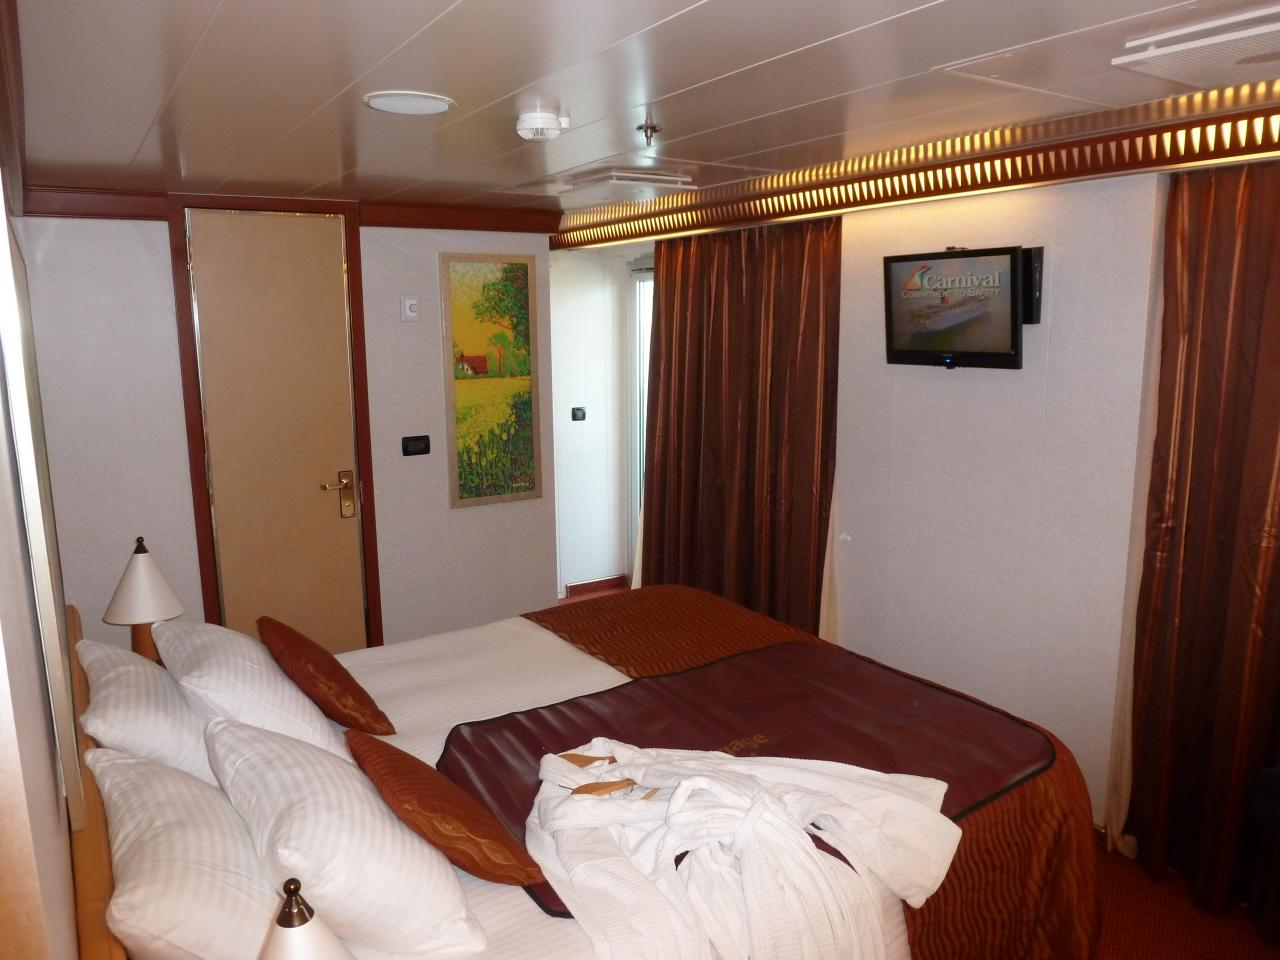 Bed and tv for Dream cabins